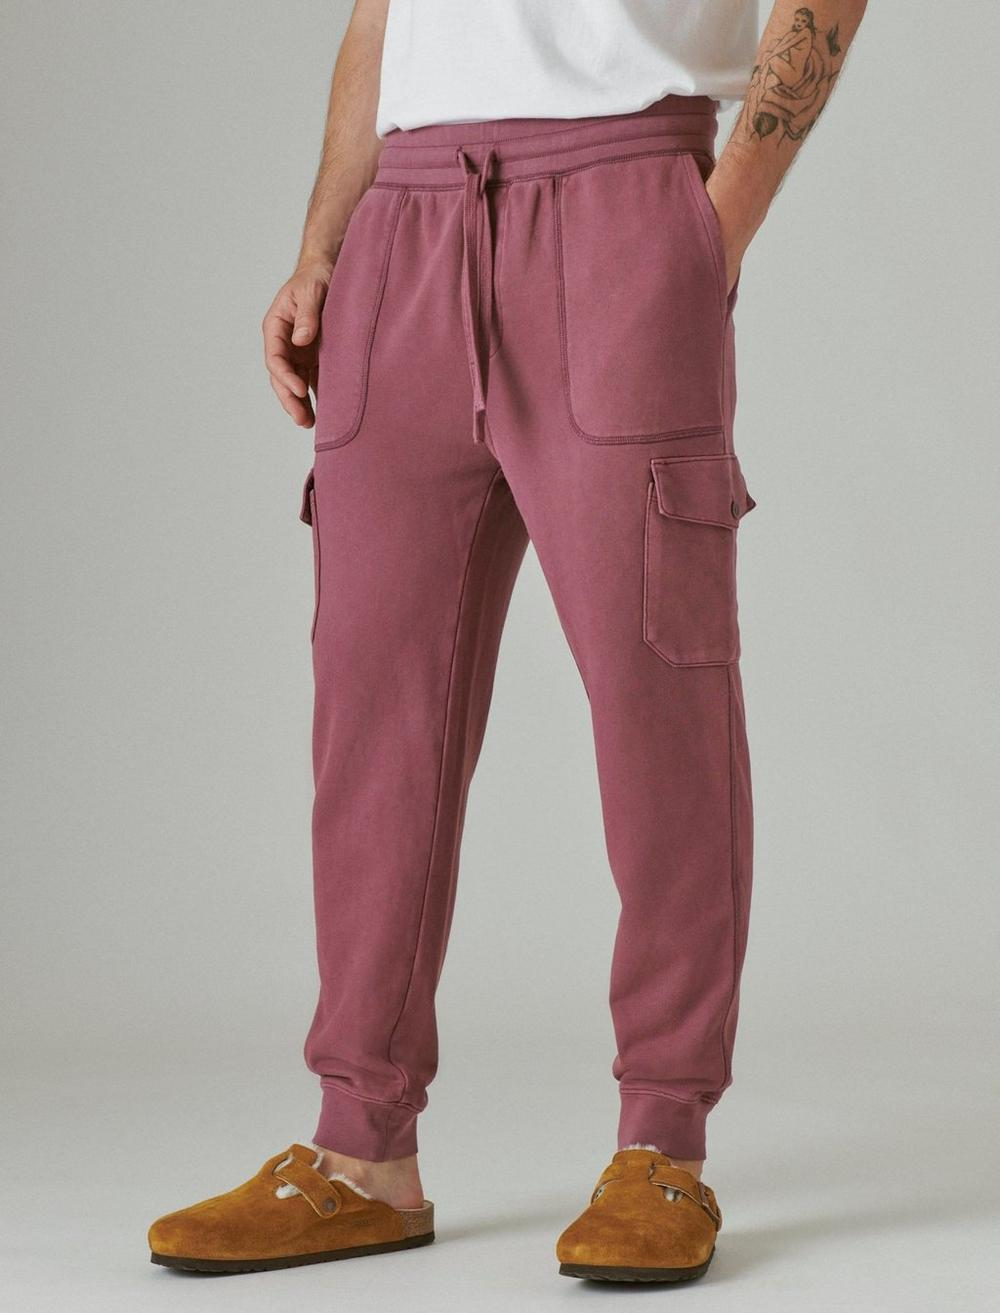 SUEDED TERRY CARGO JOGGER, image 5